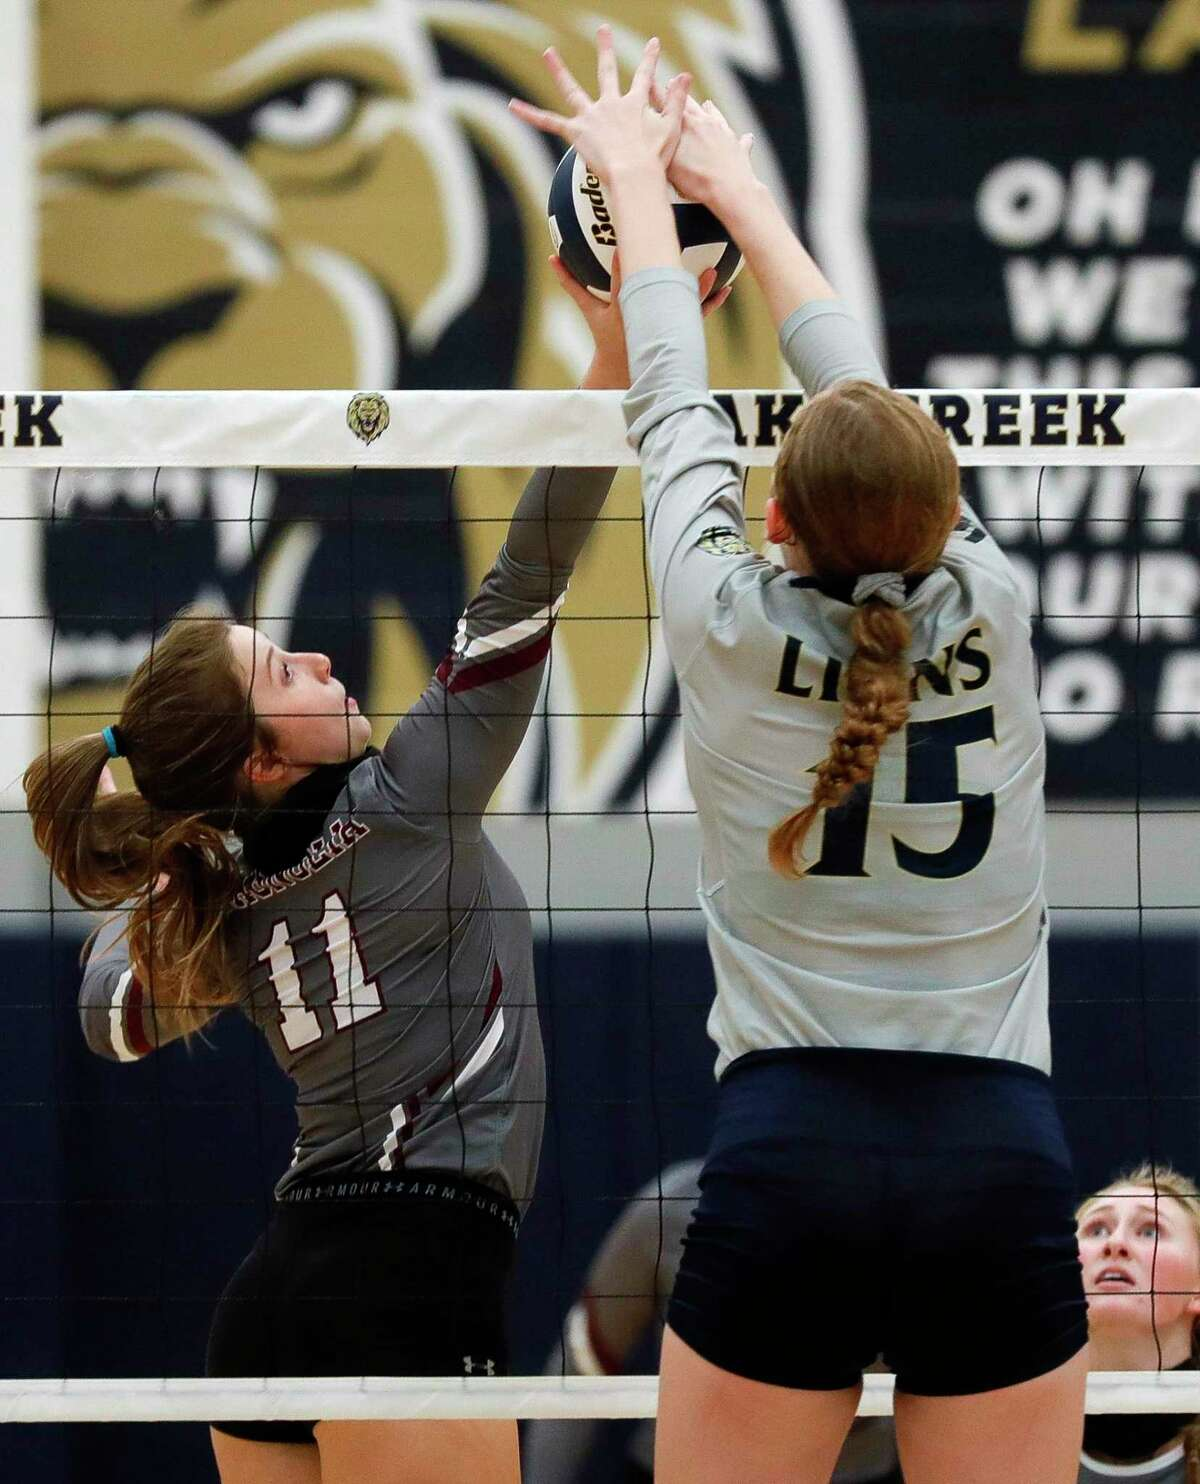 Lake Creek middle blocker Madison Blane (15) blocks a shot by Magnolia setter Faith Lynch (11) during the first set of a non-district high school volleyball match at Lake Creek High School, Tuesday, Sept. 15, 2020, in Montgomery.